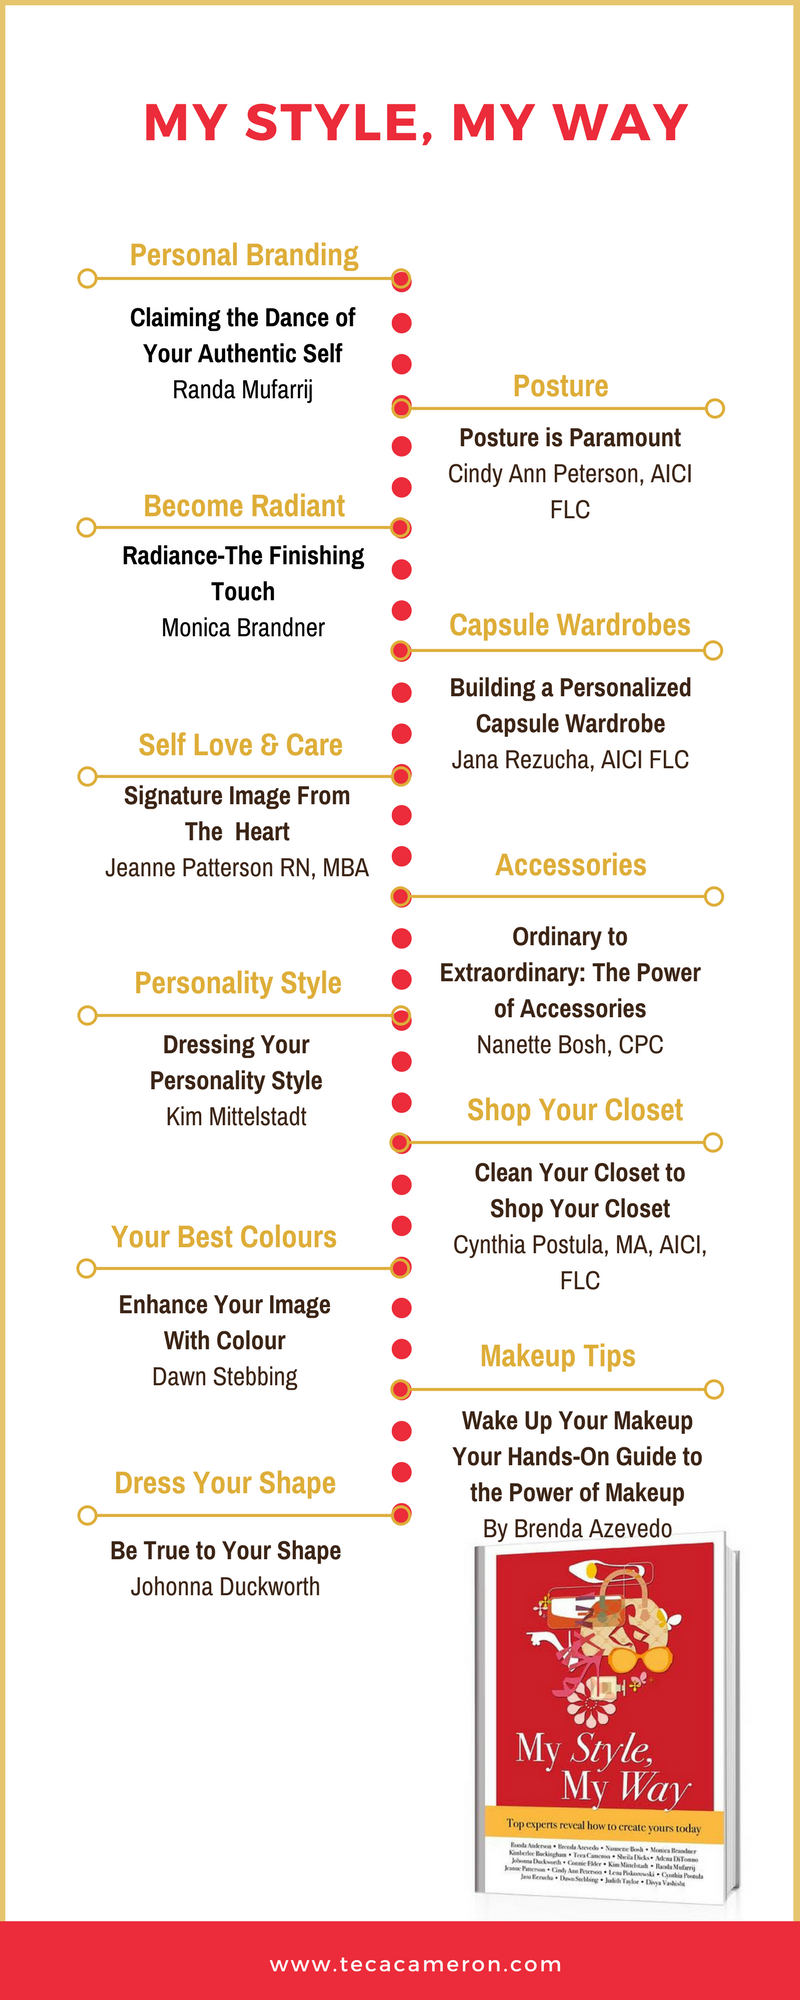 MyStyleMyWay_Authors1 (2).png